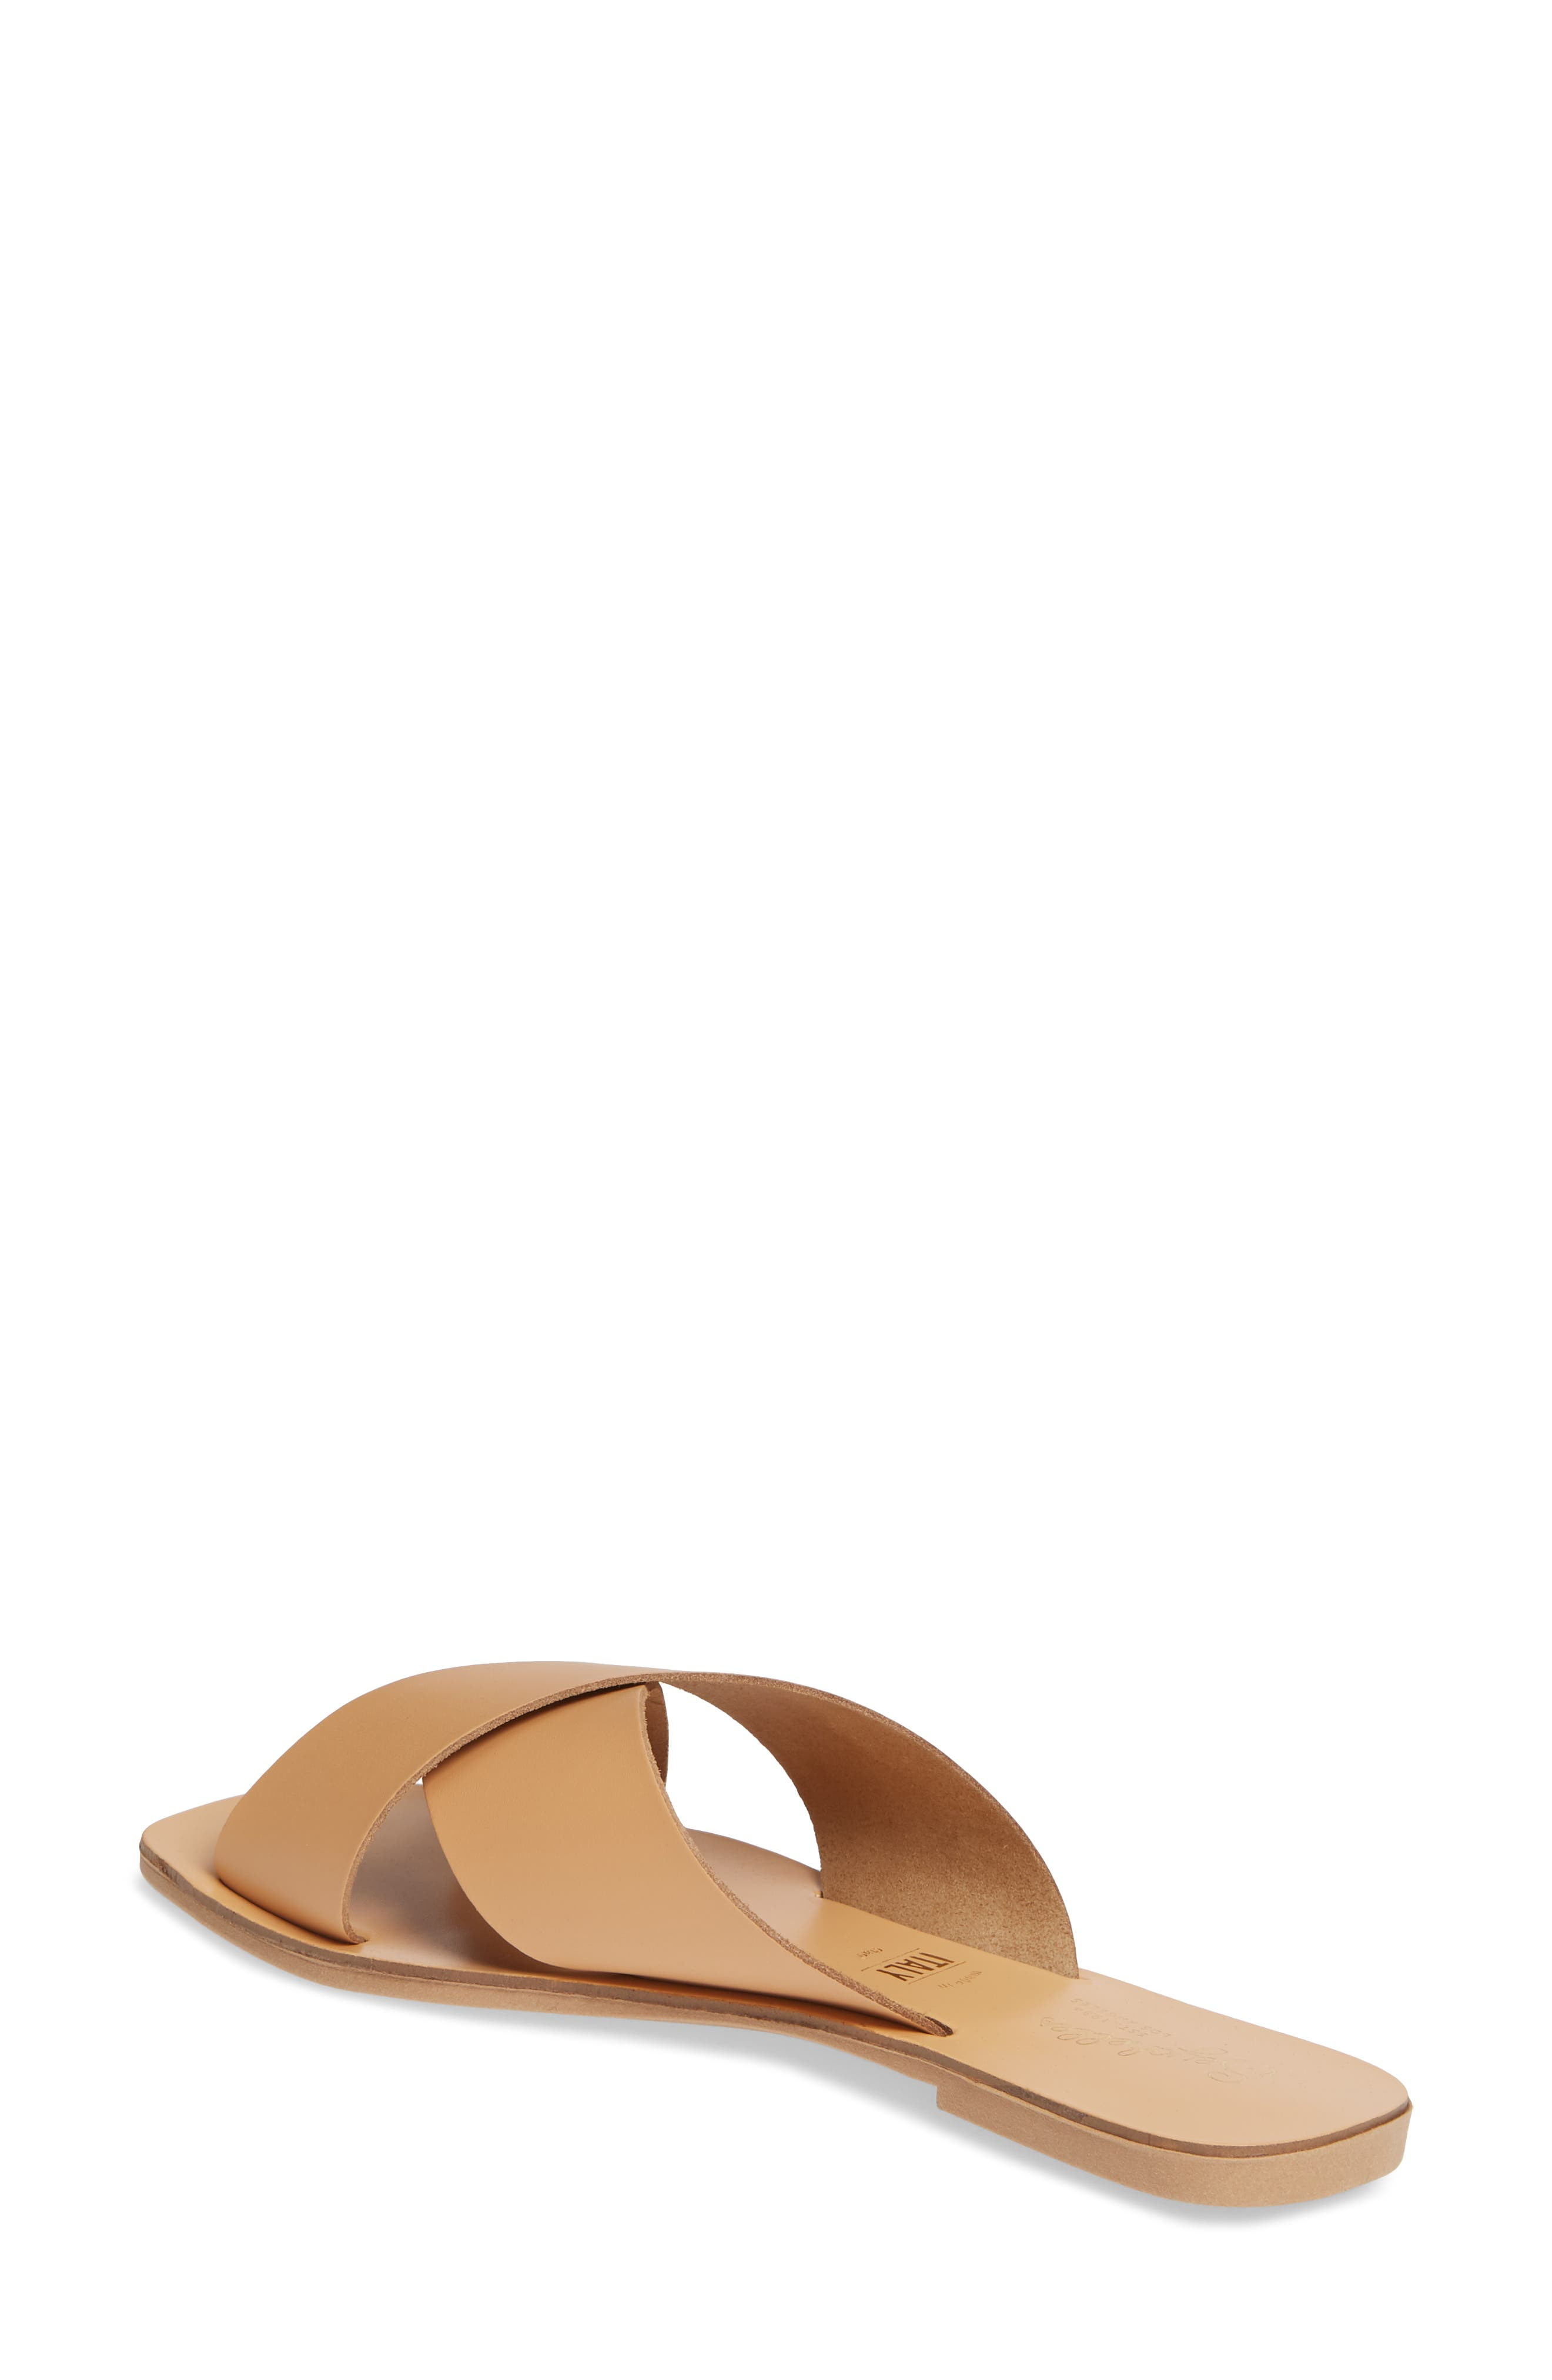 Total Relaxation Slide Sandal,                             Alternate thumbnail 2, color,                             BEIGE LEATHER